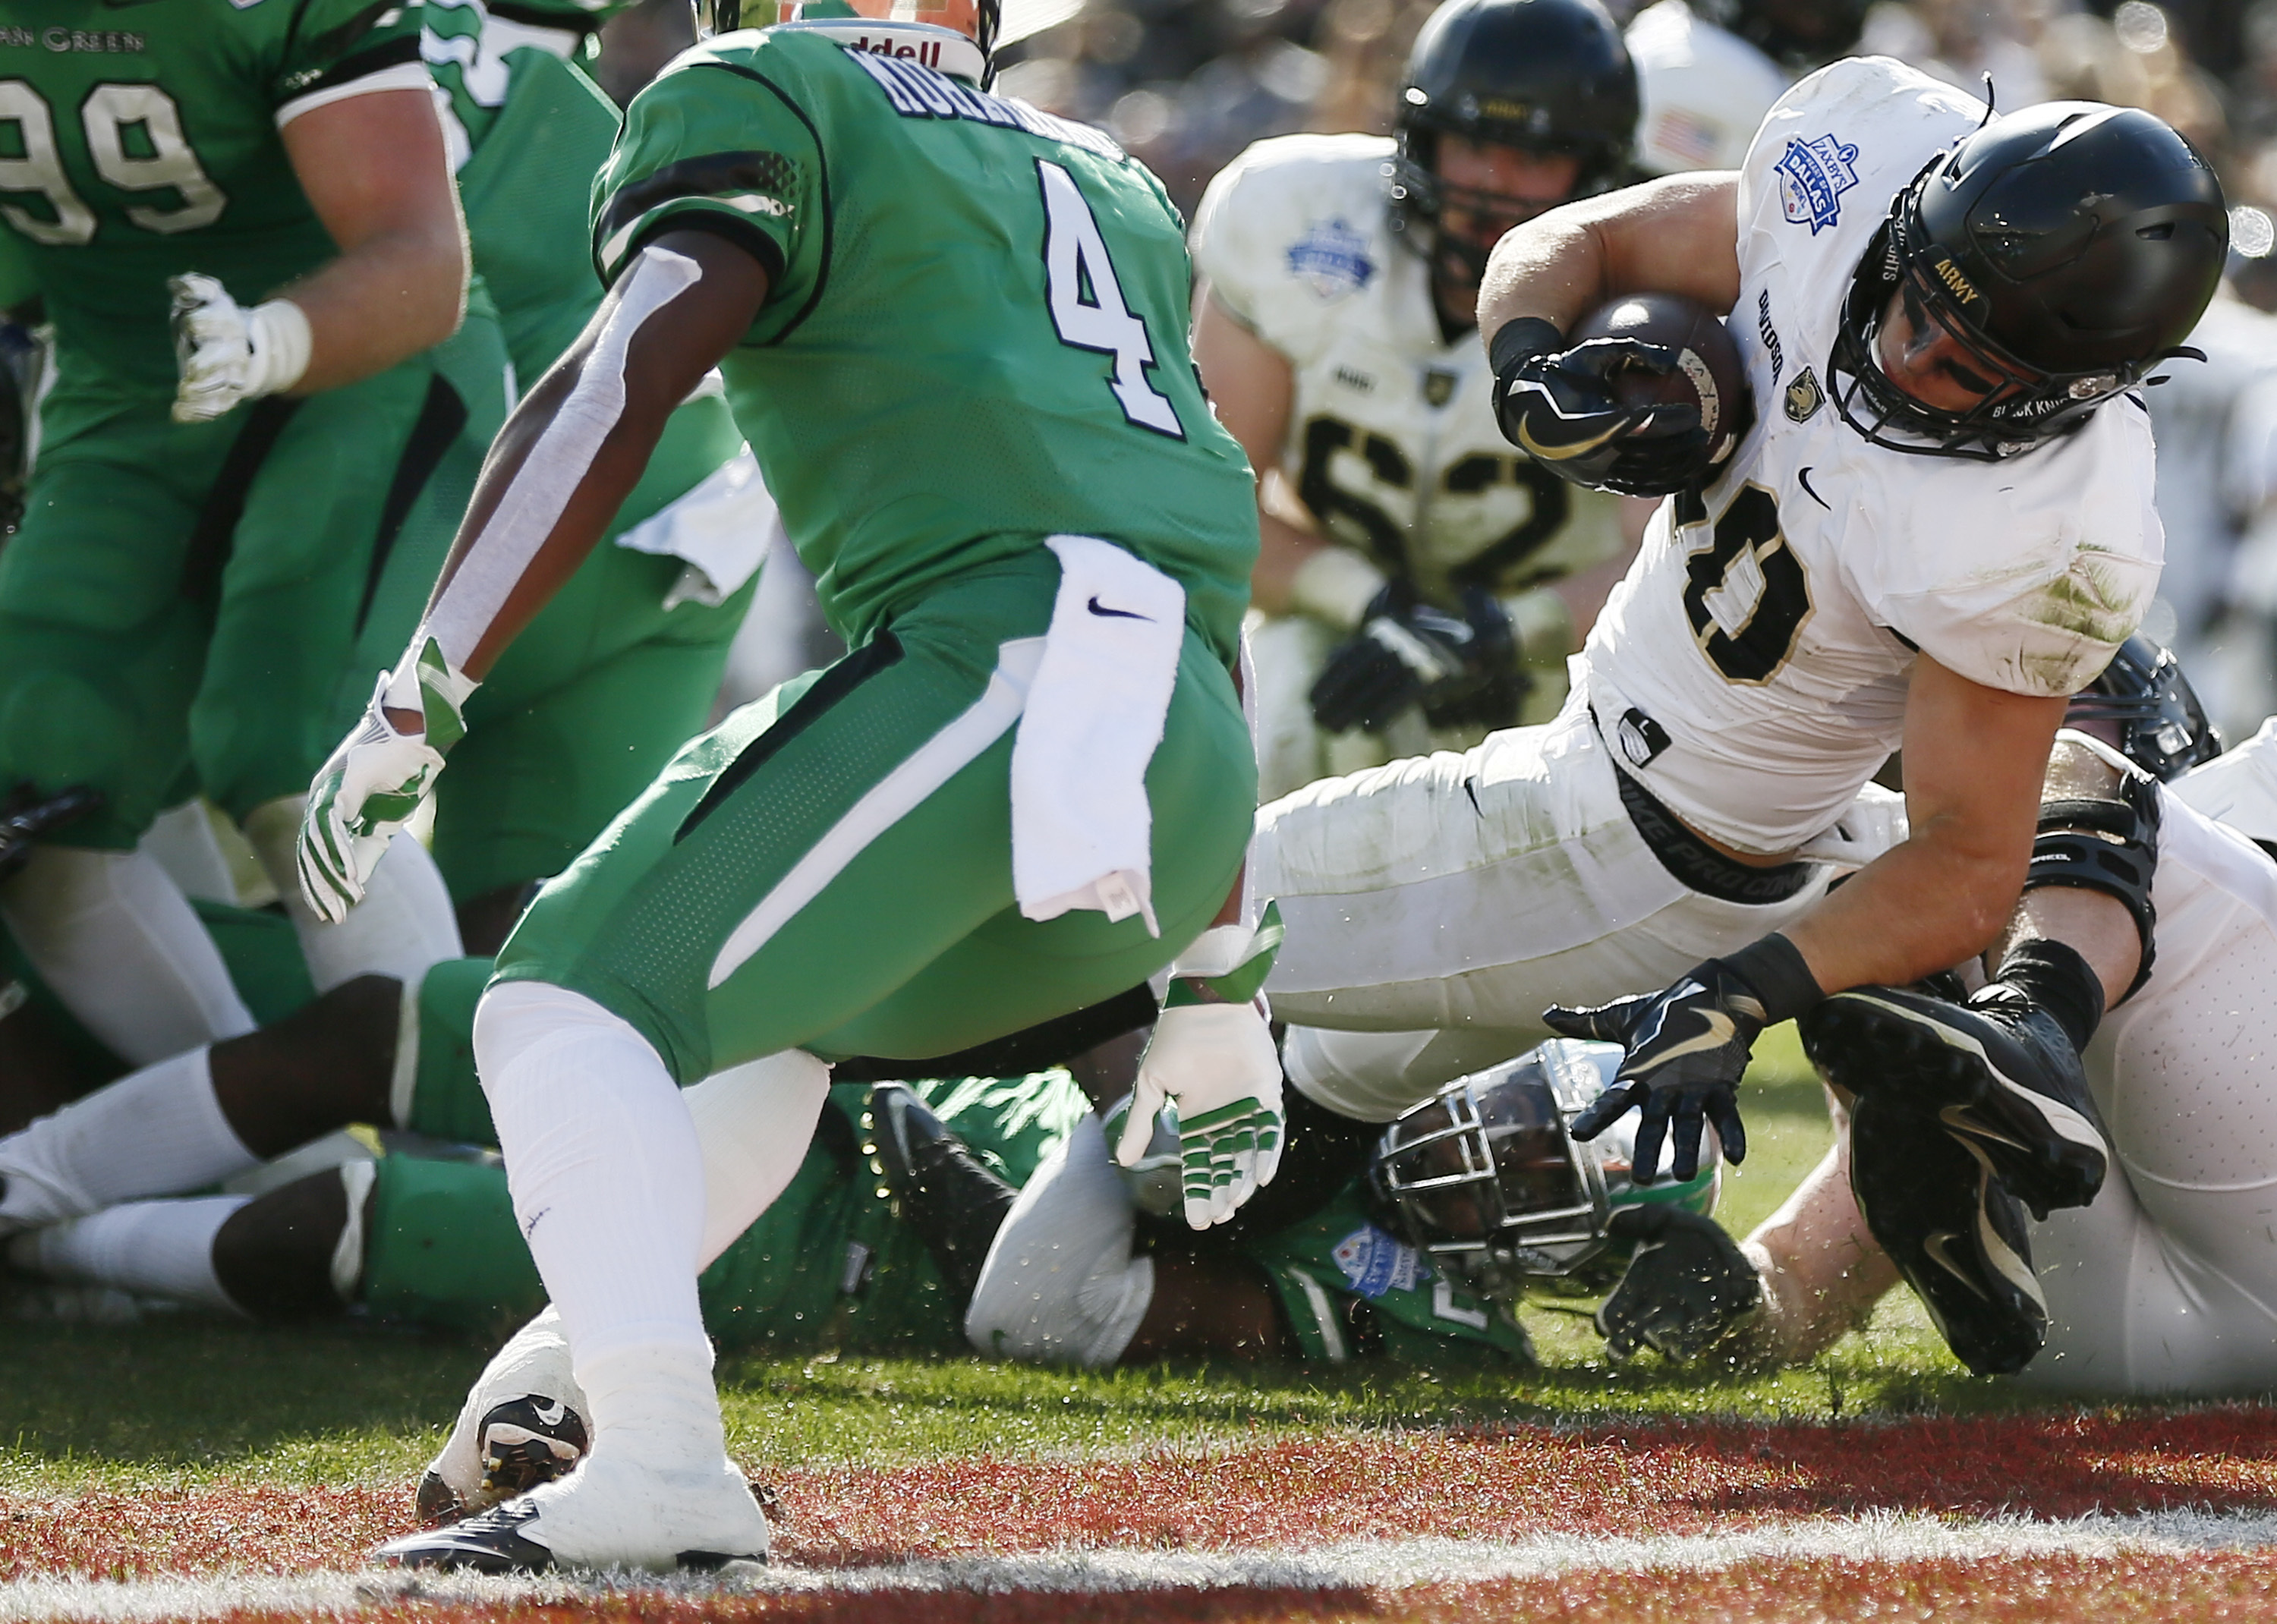 Army running back Andy Davidson (40) battles past the North Texas defense to score a touchdown during the first half of the Heart of Dallas Bowl NCAA college football game Tuesday, Dec. 27, 2016 in Dallas. (AP Photo/Brandon Wade)